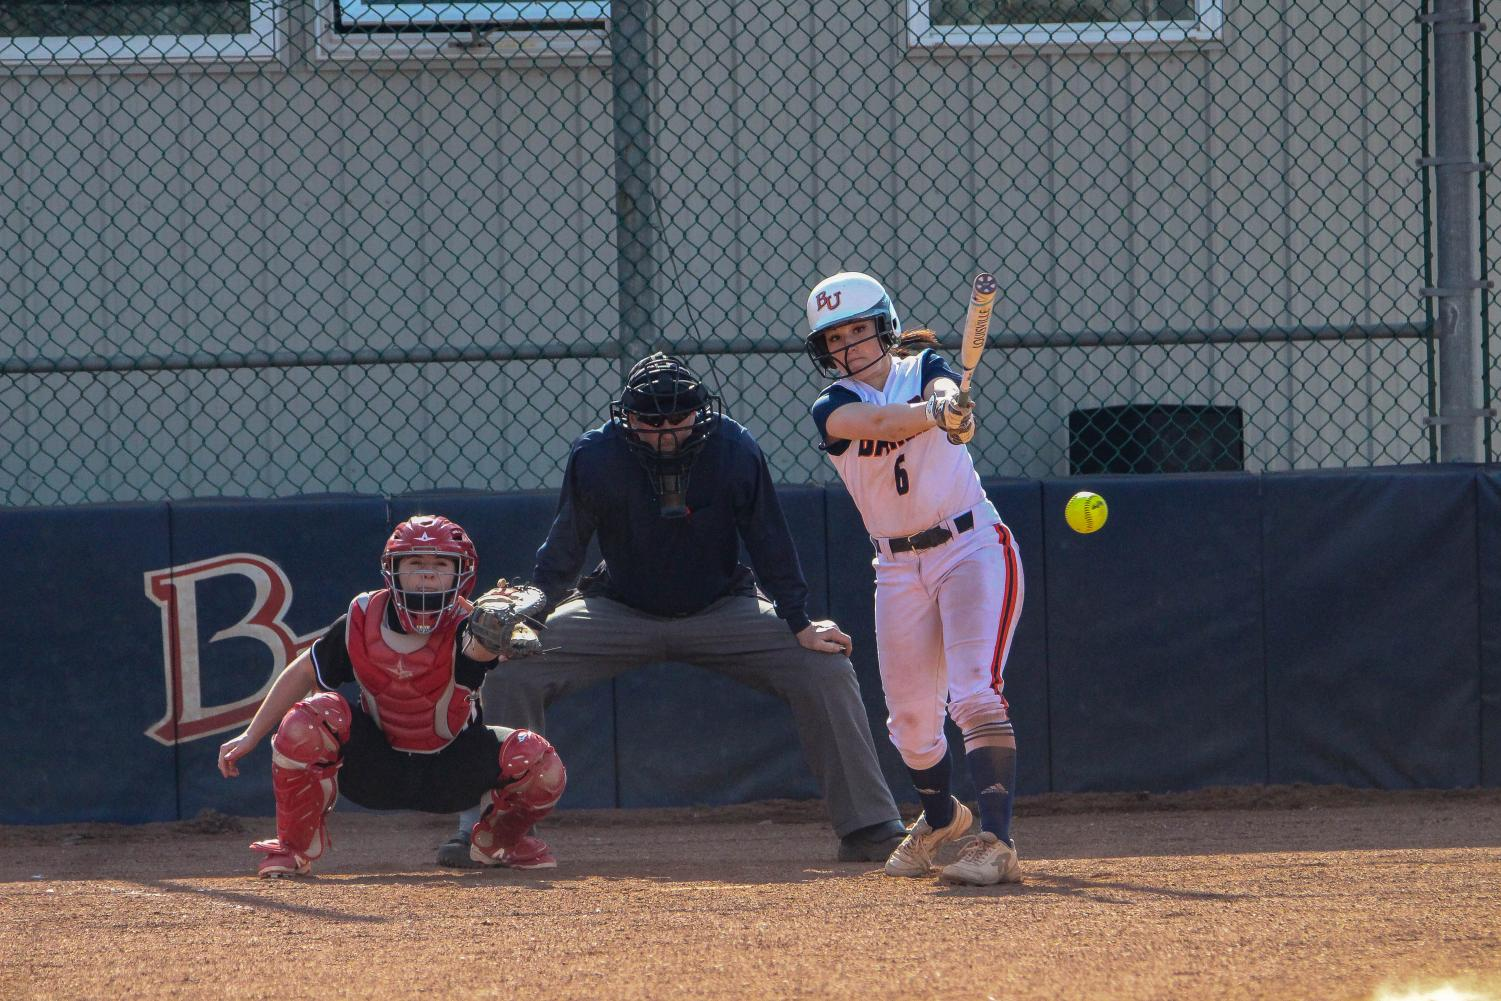 Sophomore Hannah Flynn gets a hit against Benedictine on March 9. Flynn has a .343 batting average this season with two home runs and 17 RBIs.